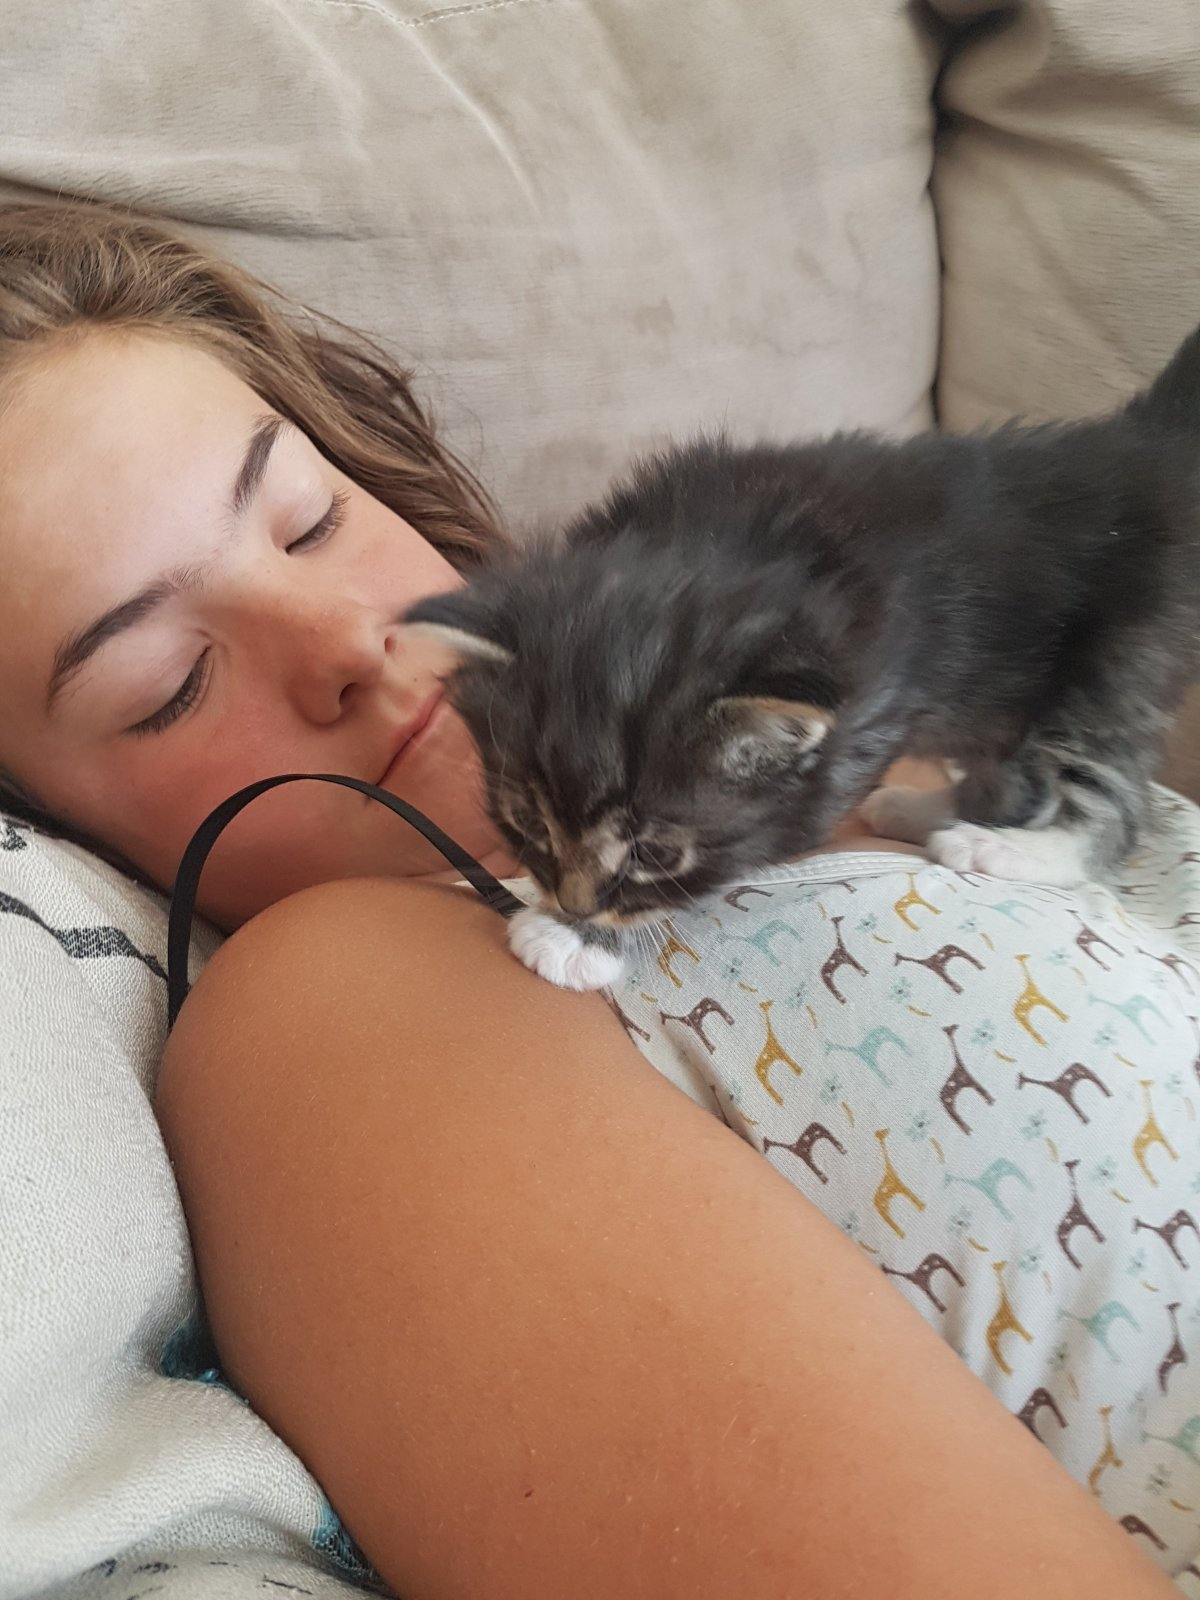 Kids and kittens, so cute!